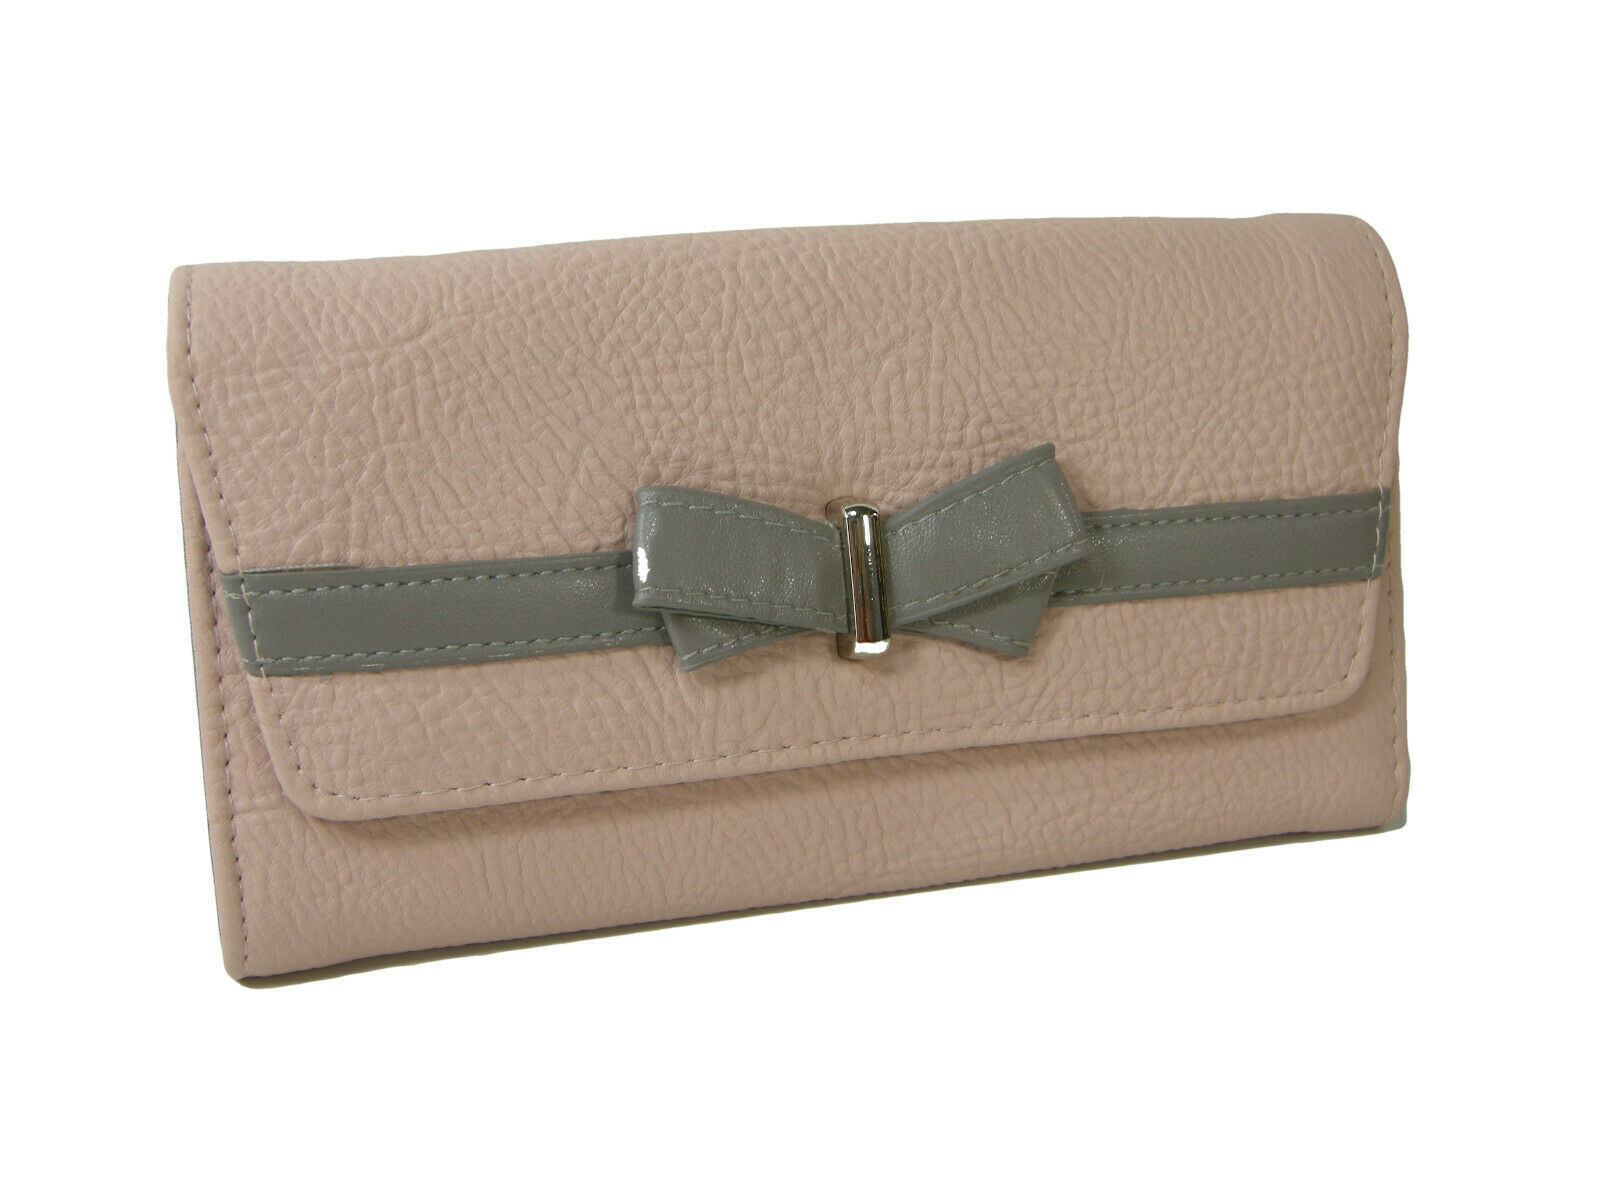 Jessica Simpson Logo Wallet Purse Hand Bag Blush Fog Pink Gray Linea Bow NWT - $39.59